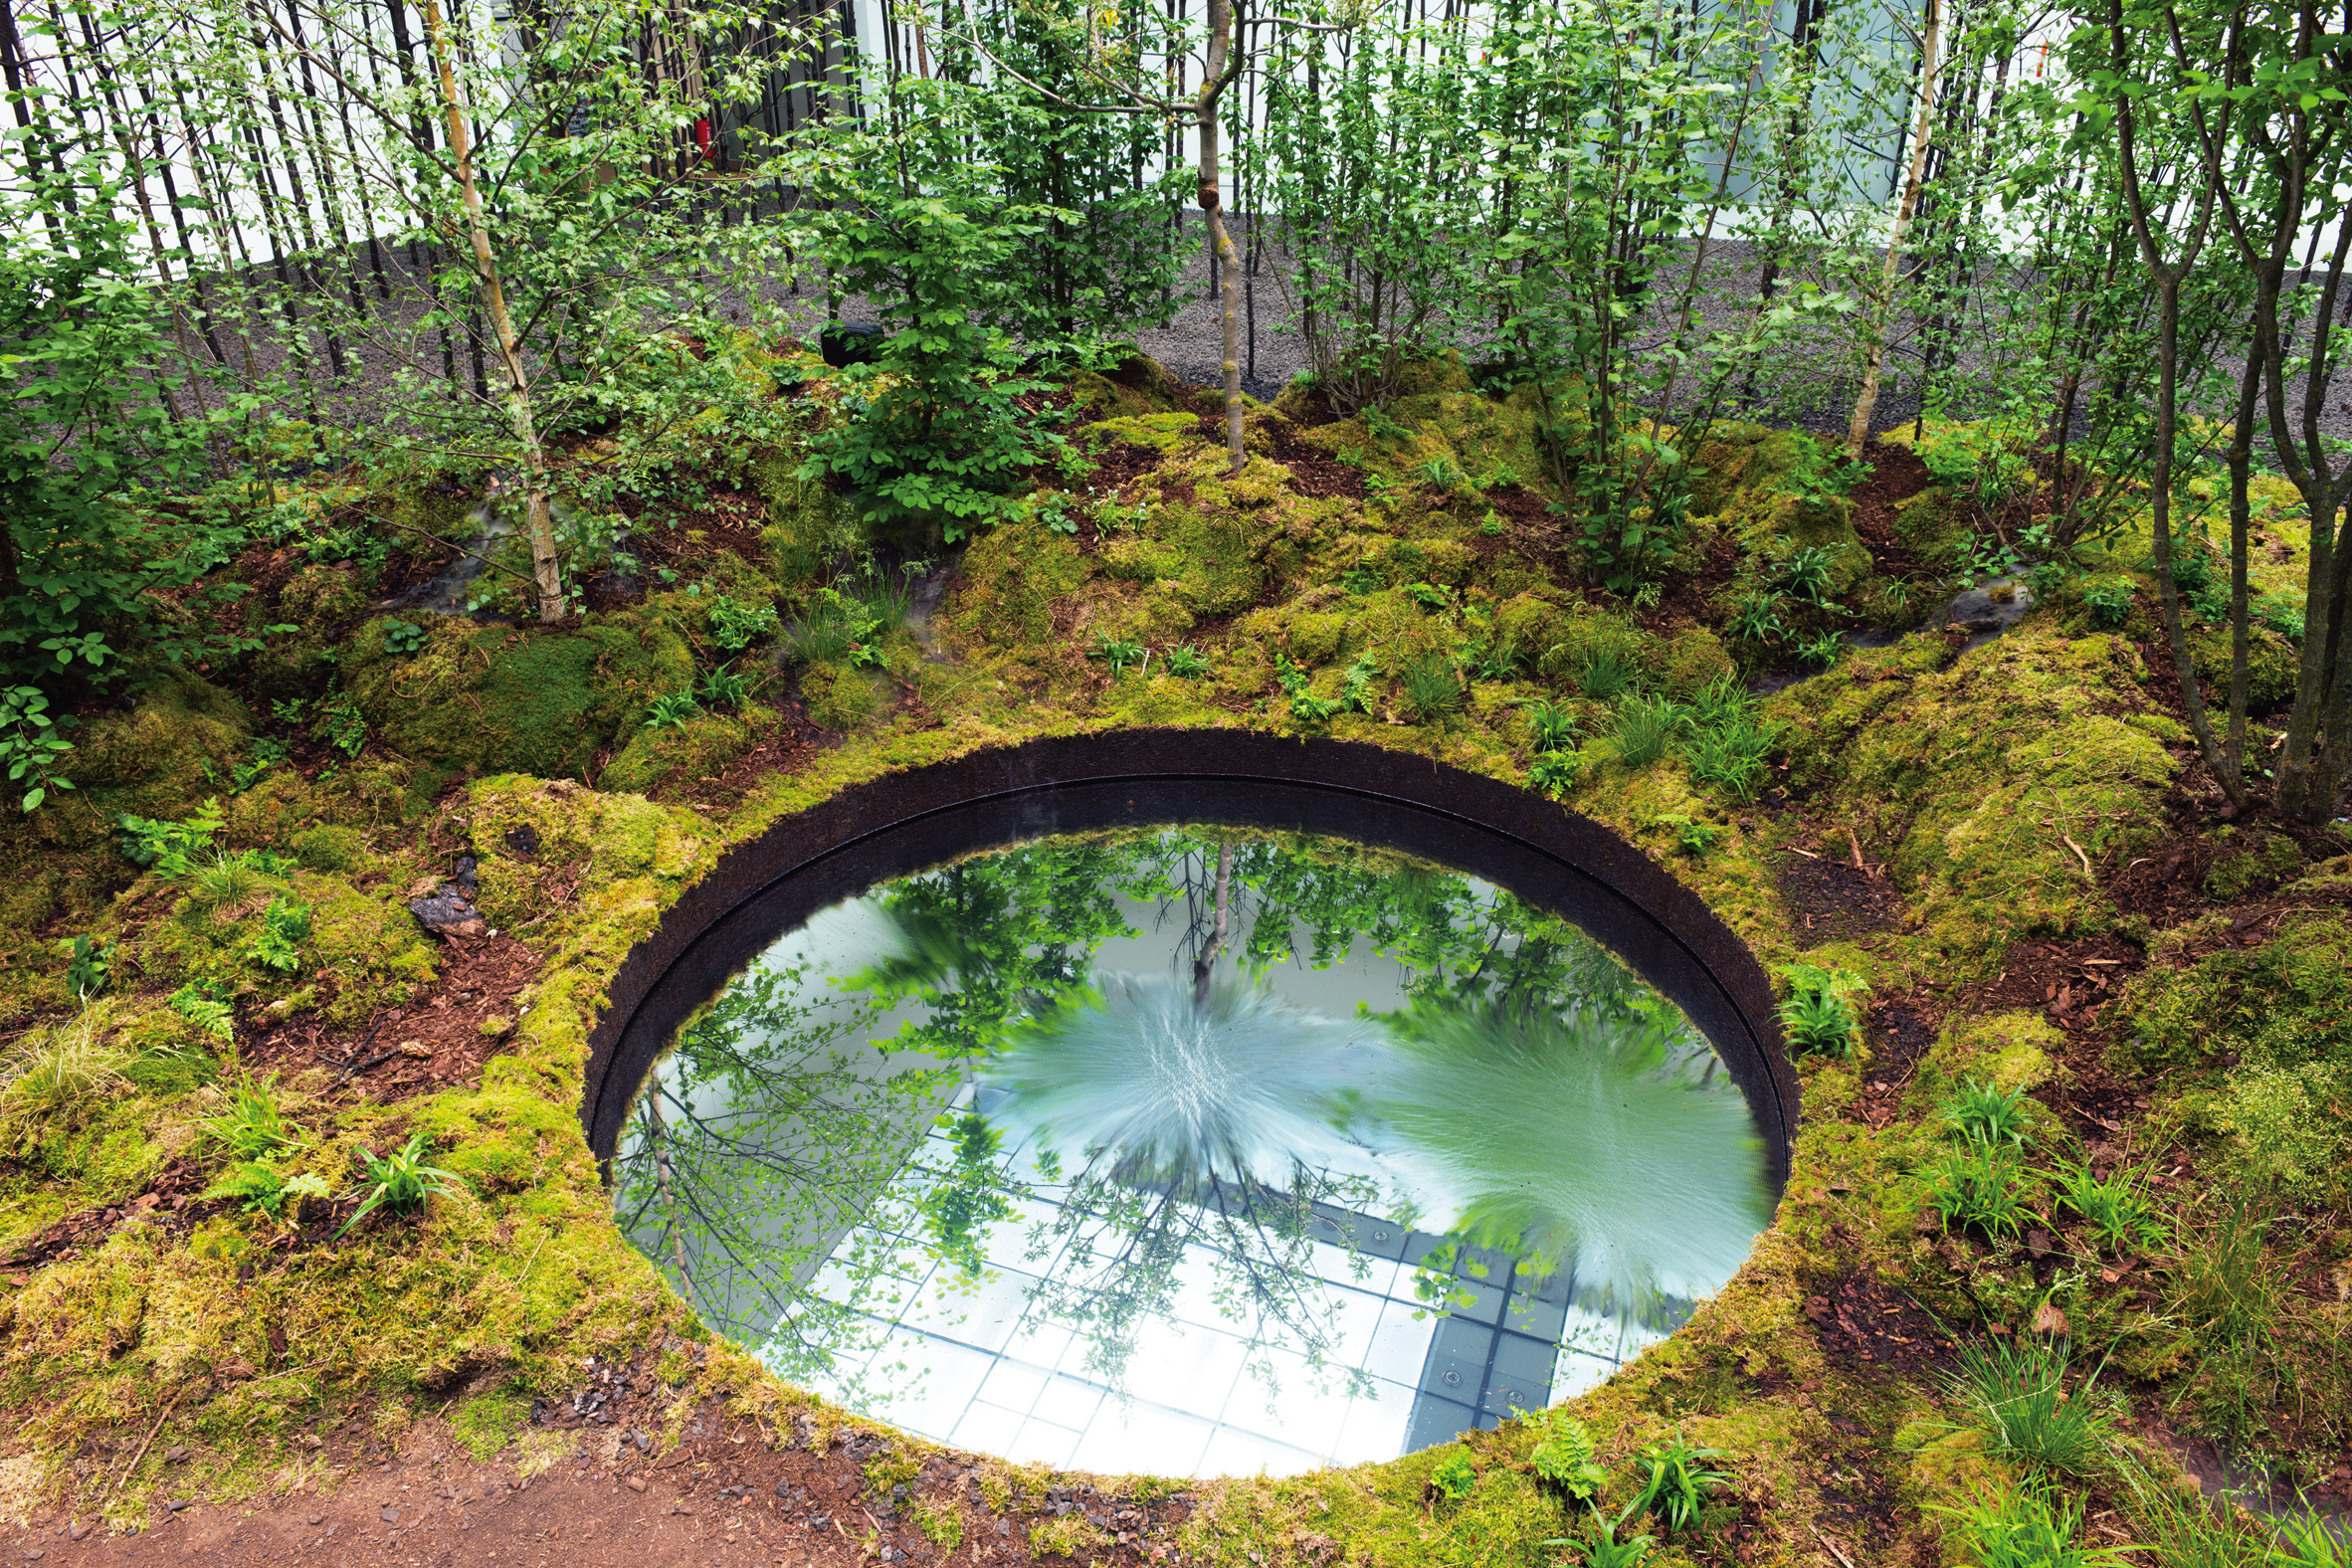 Invocation for Hope in Vienna features a circular reflection pool surrounded by moss